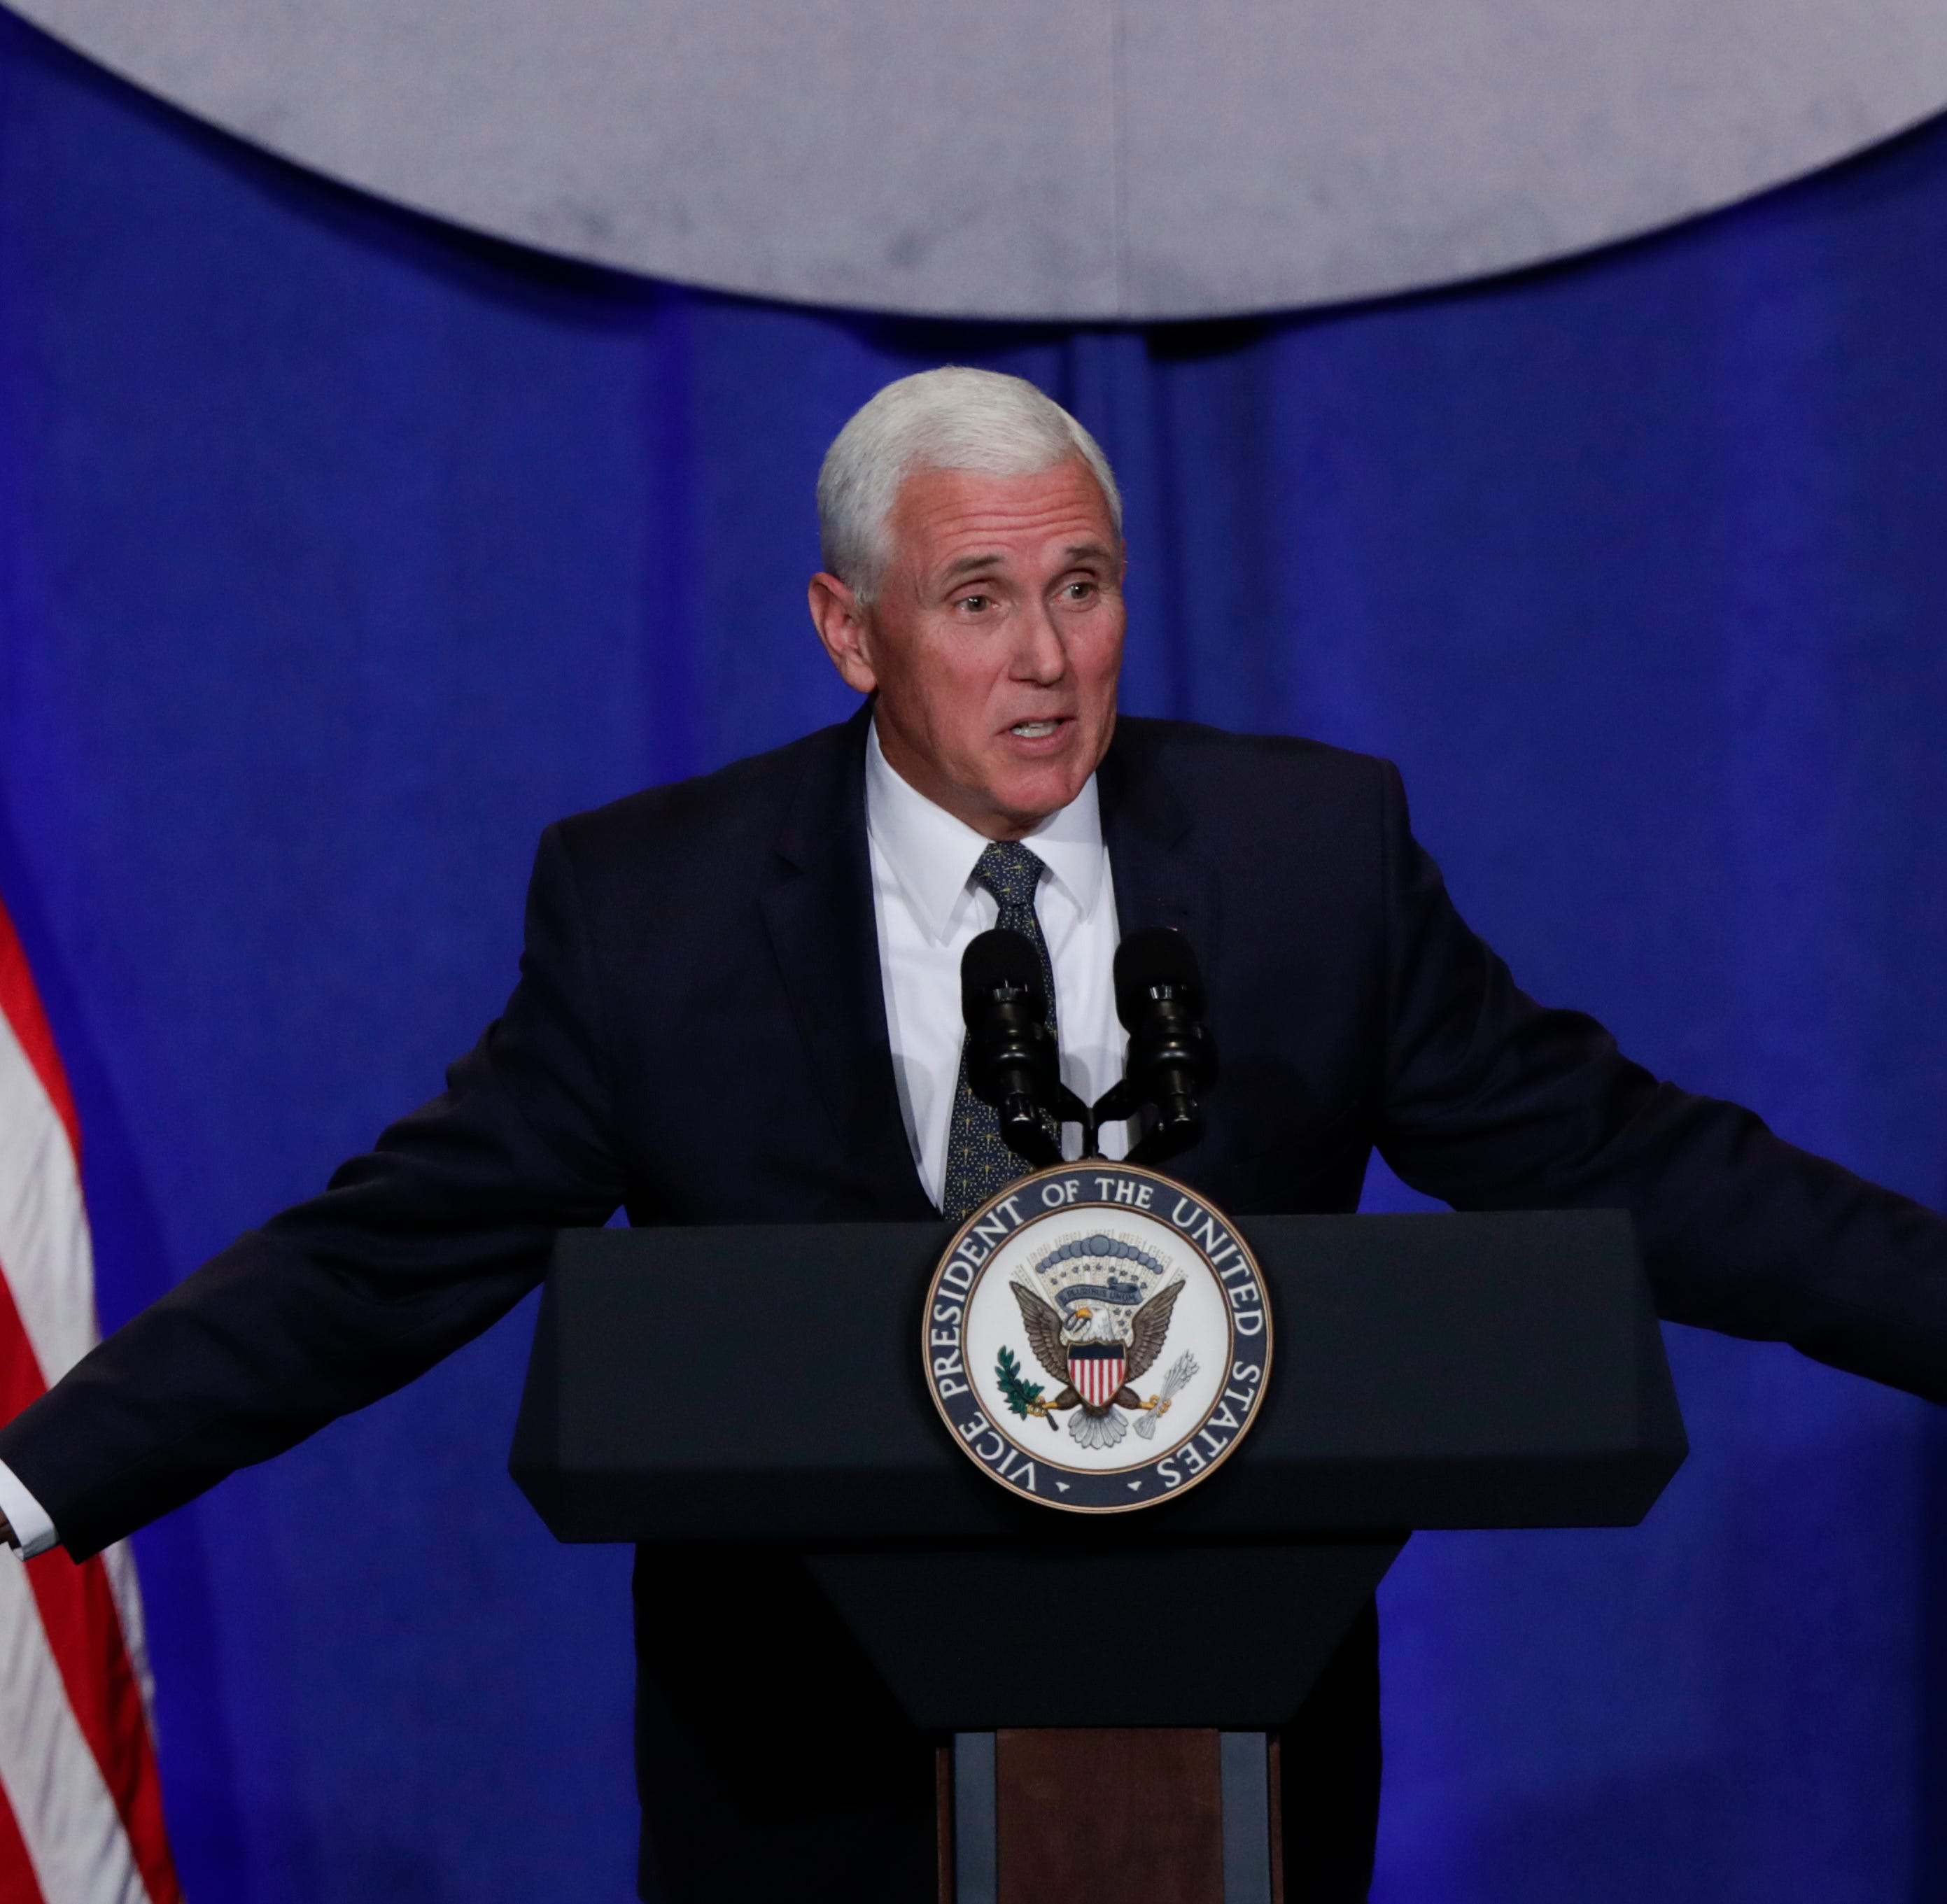 Pence implores Hoosiers to vote for Braun, help with Hurricane Michael relief